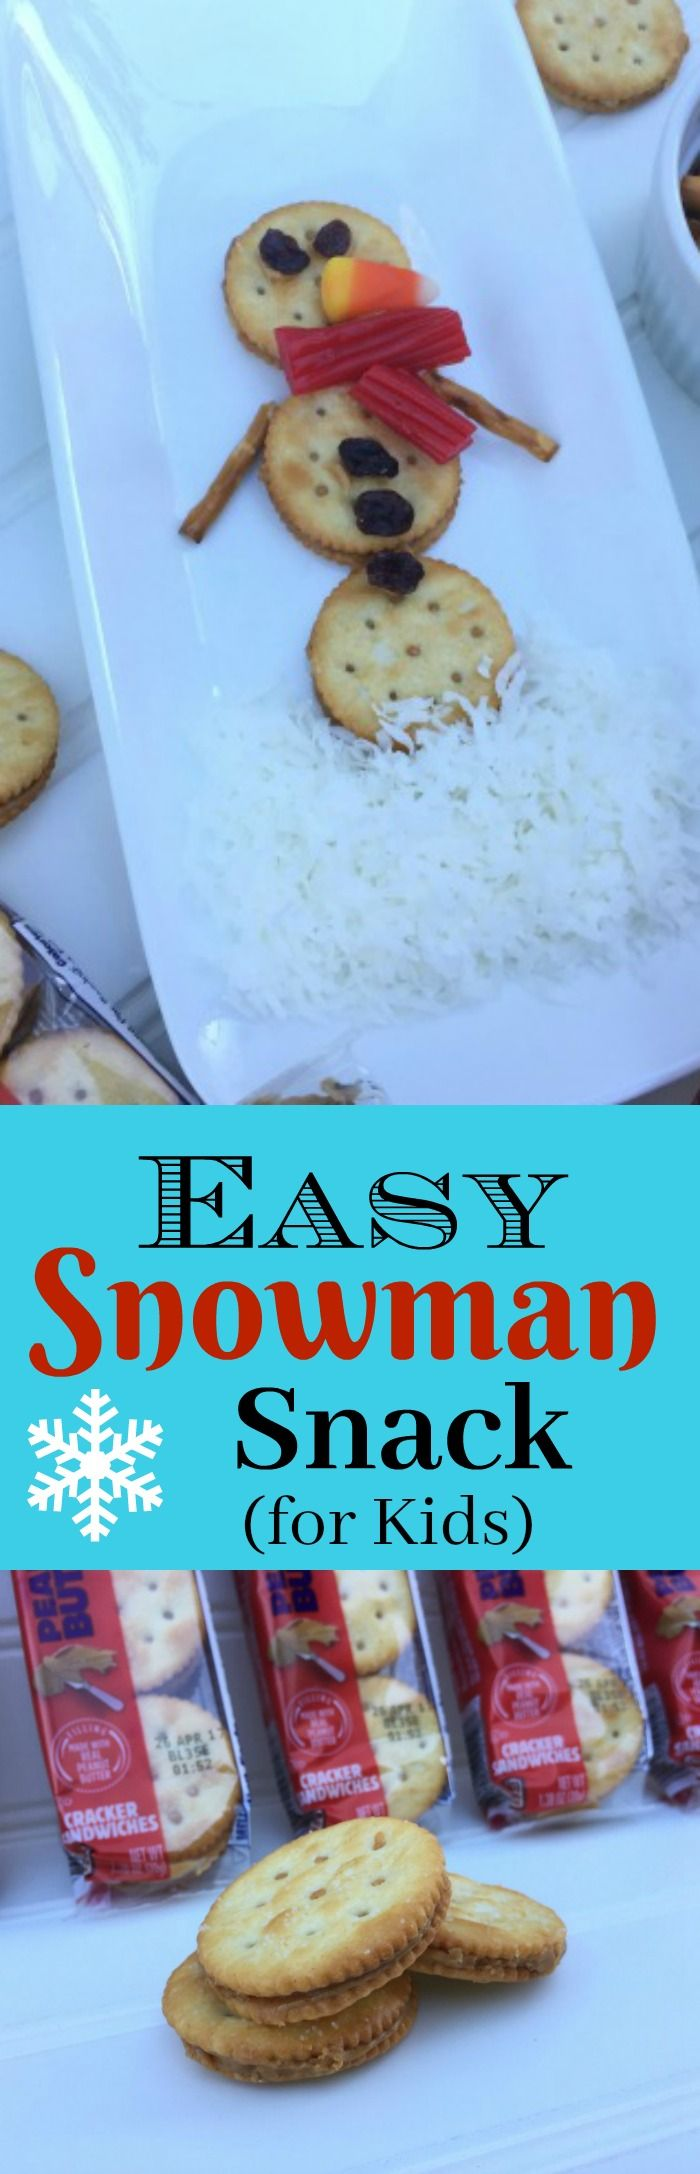 Easy Snowman Snack for Kids for Christmas or winter-time fun. AD #Christmas #Snacks #Kids #FoodFun